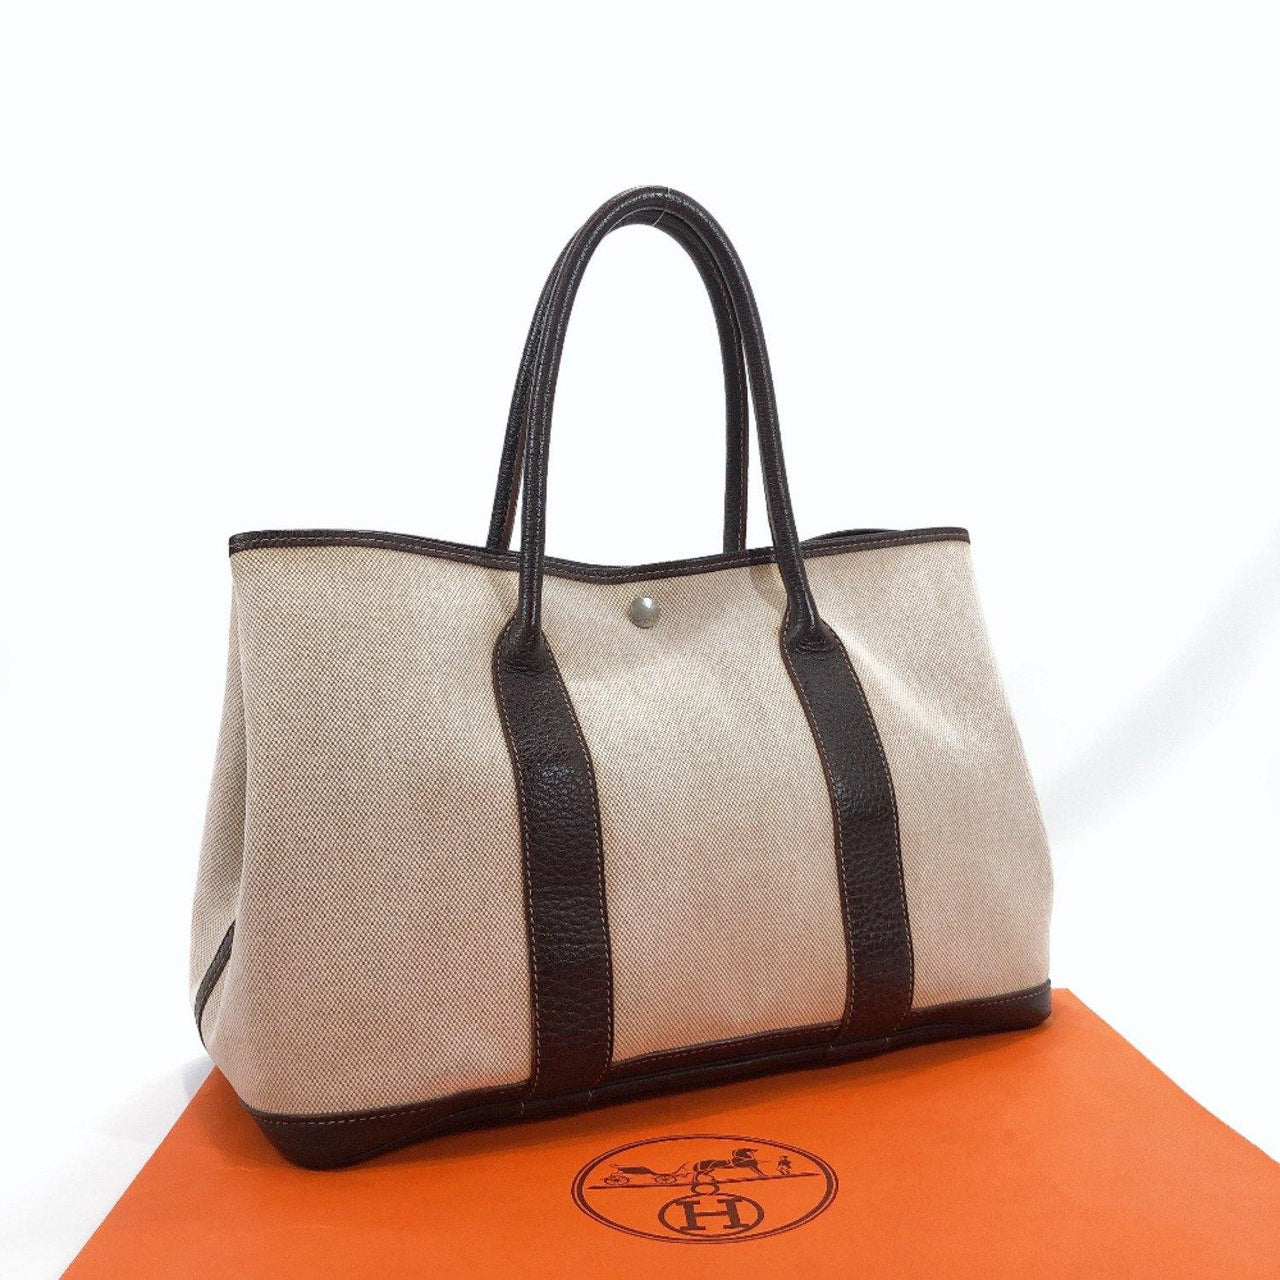 HERMES Tote Bag Garden party PM Tower ash/leather Brown beige Women Used - JP-BRANDS.com